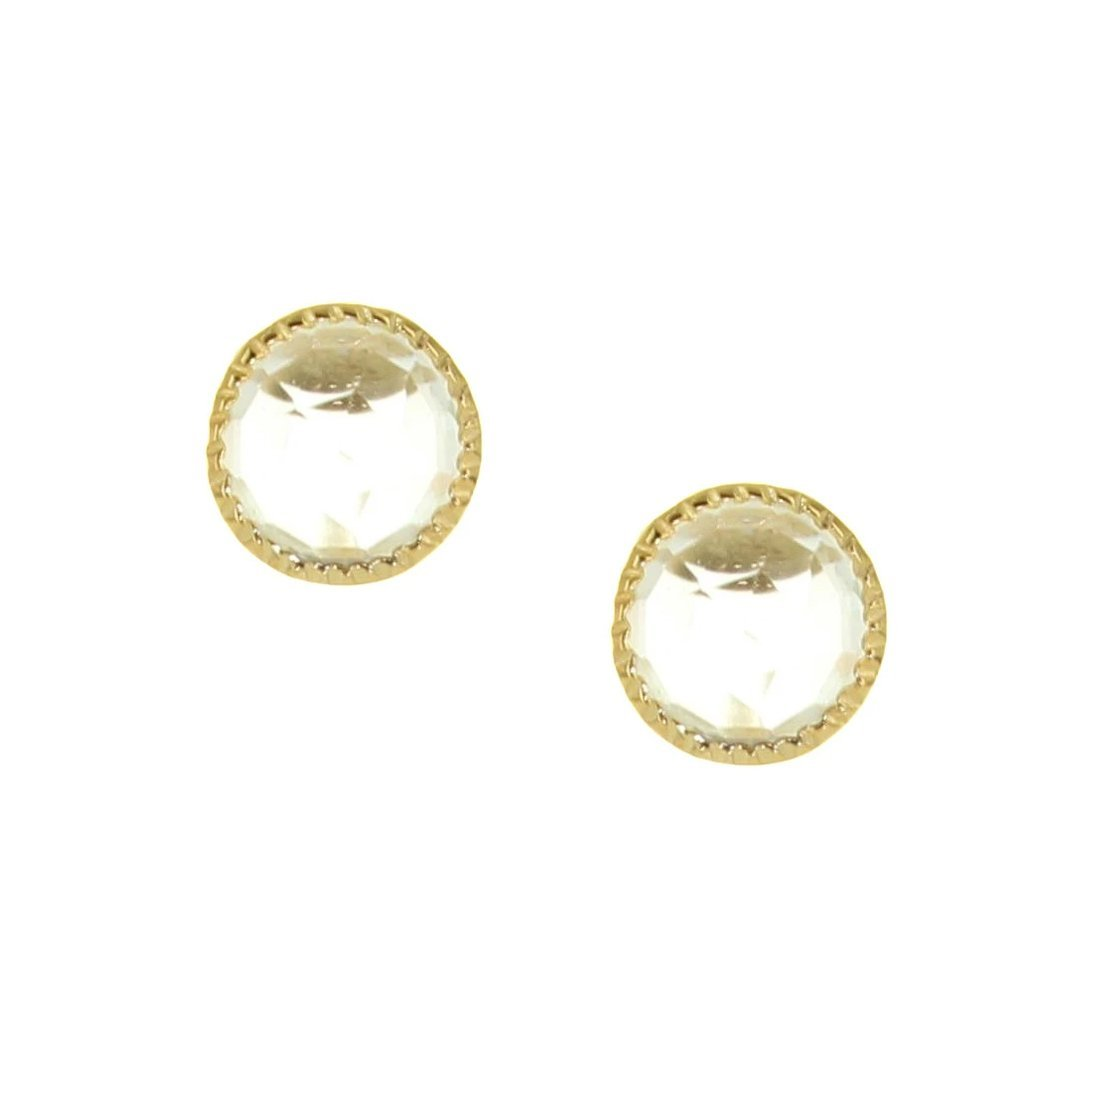 MINI ACCEPT STUD EARRINGS - WHITE TOPAZ & GOLD - SO PRETTY CARA COTTER